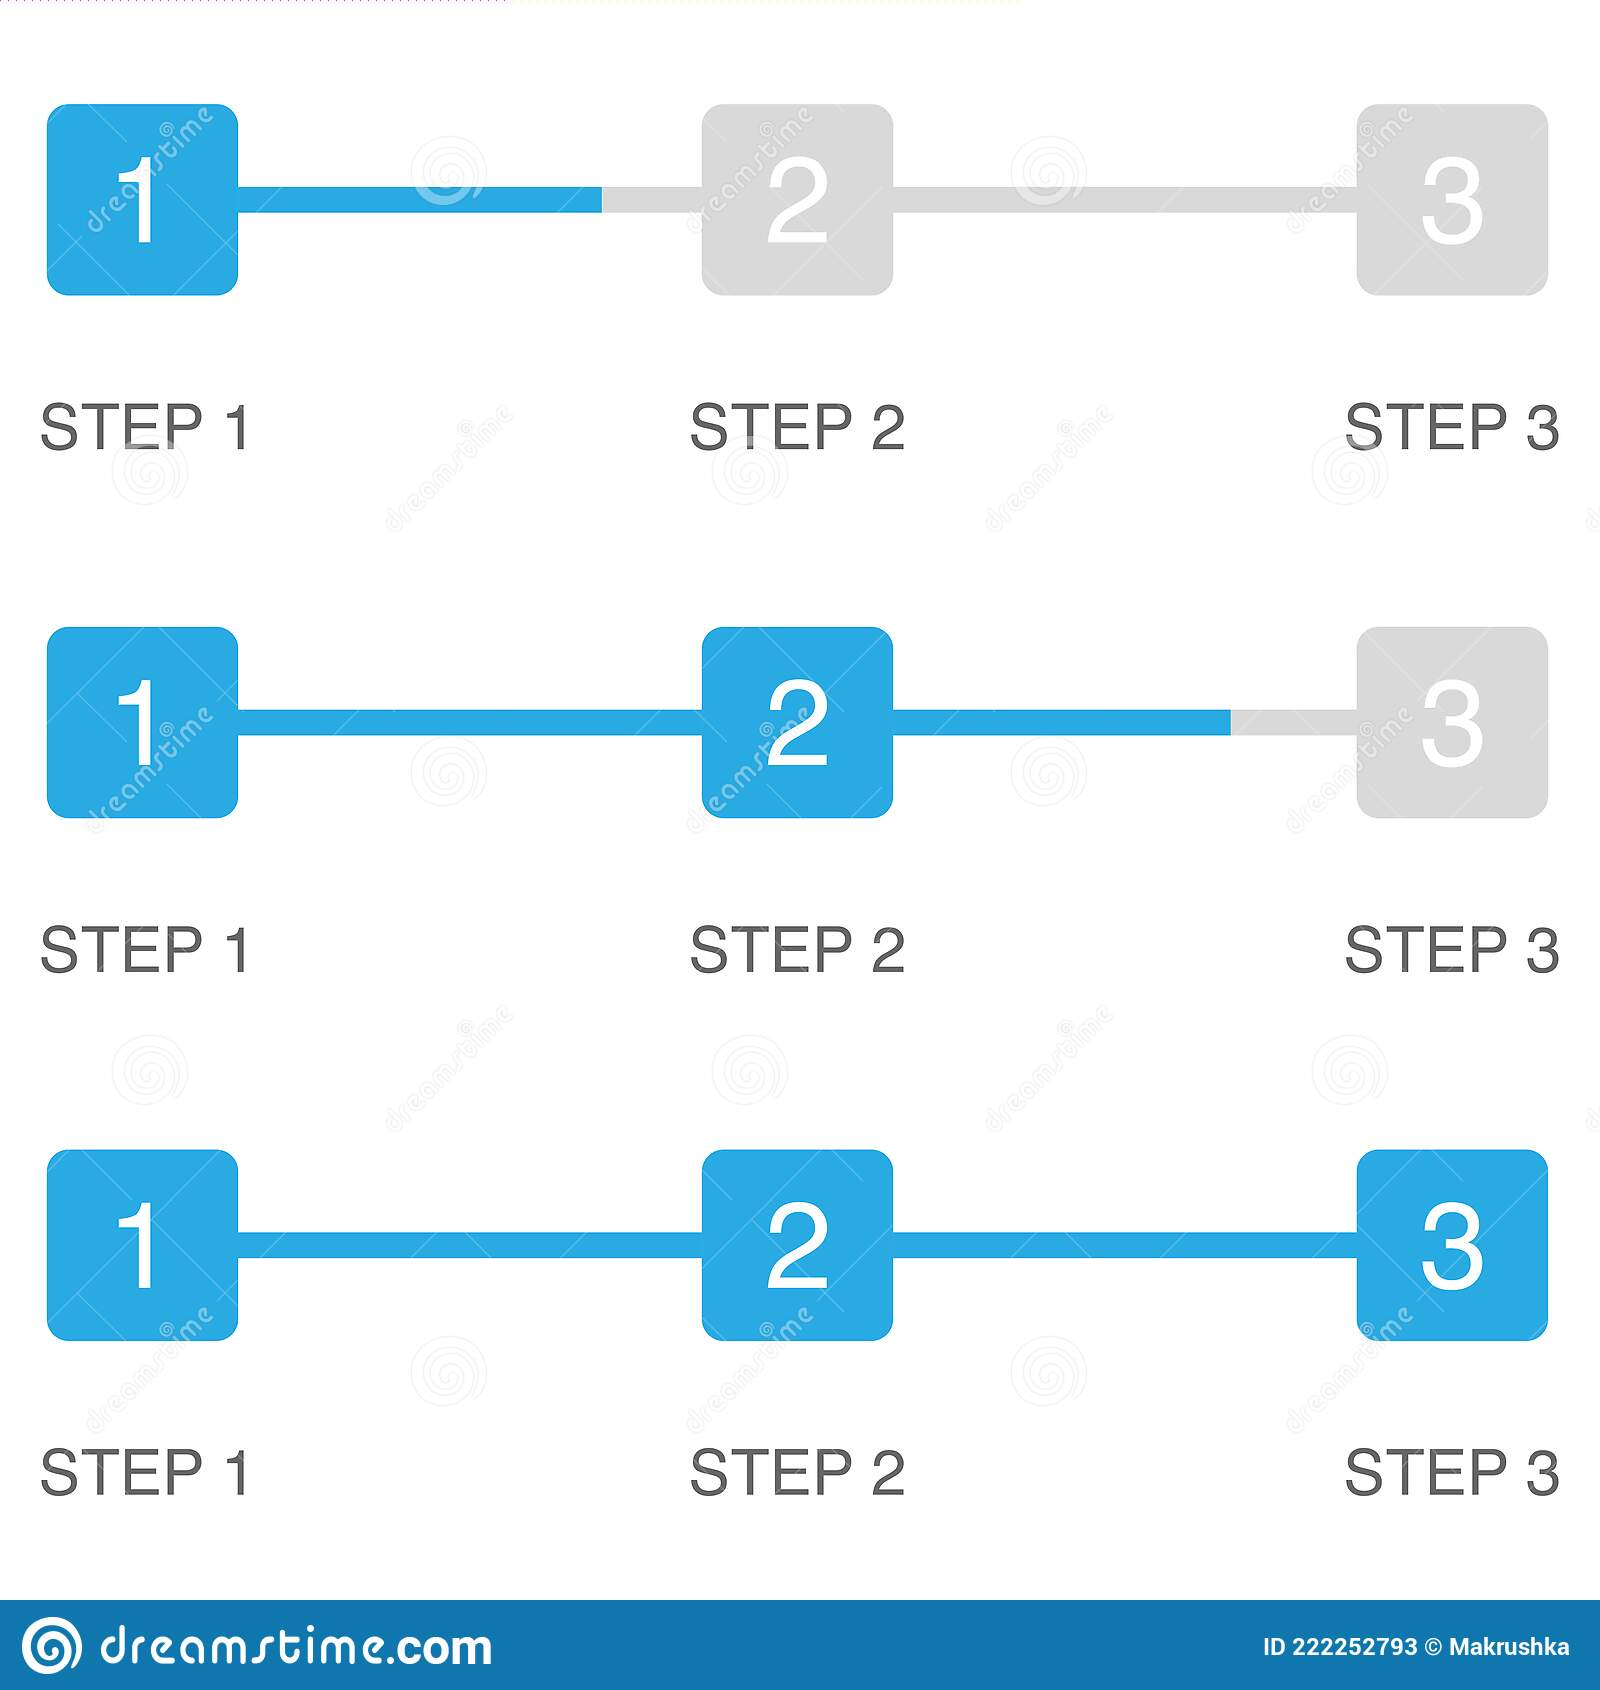 three steps infographic. progress bar in blue. process chart from step 1 to  3. instruction diagram. infographic in square box. stock vector -  illustration of infographic, graphic: 222252793  dreamstime.com